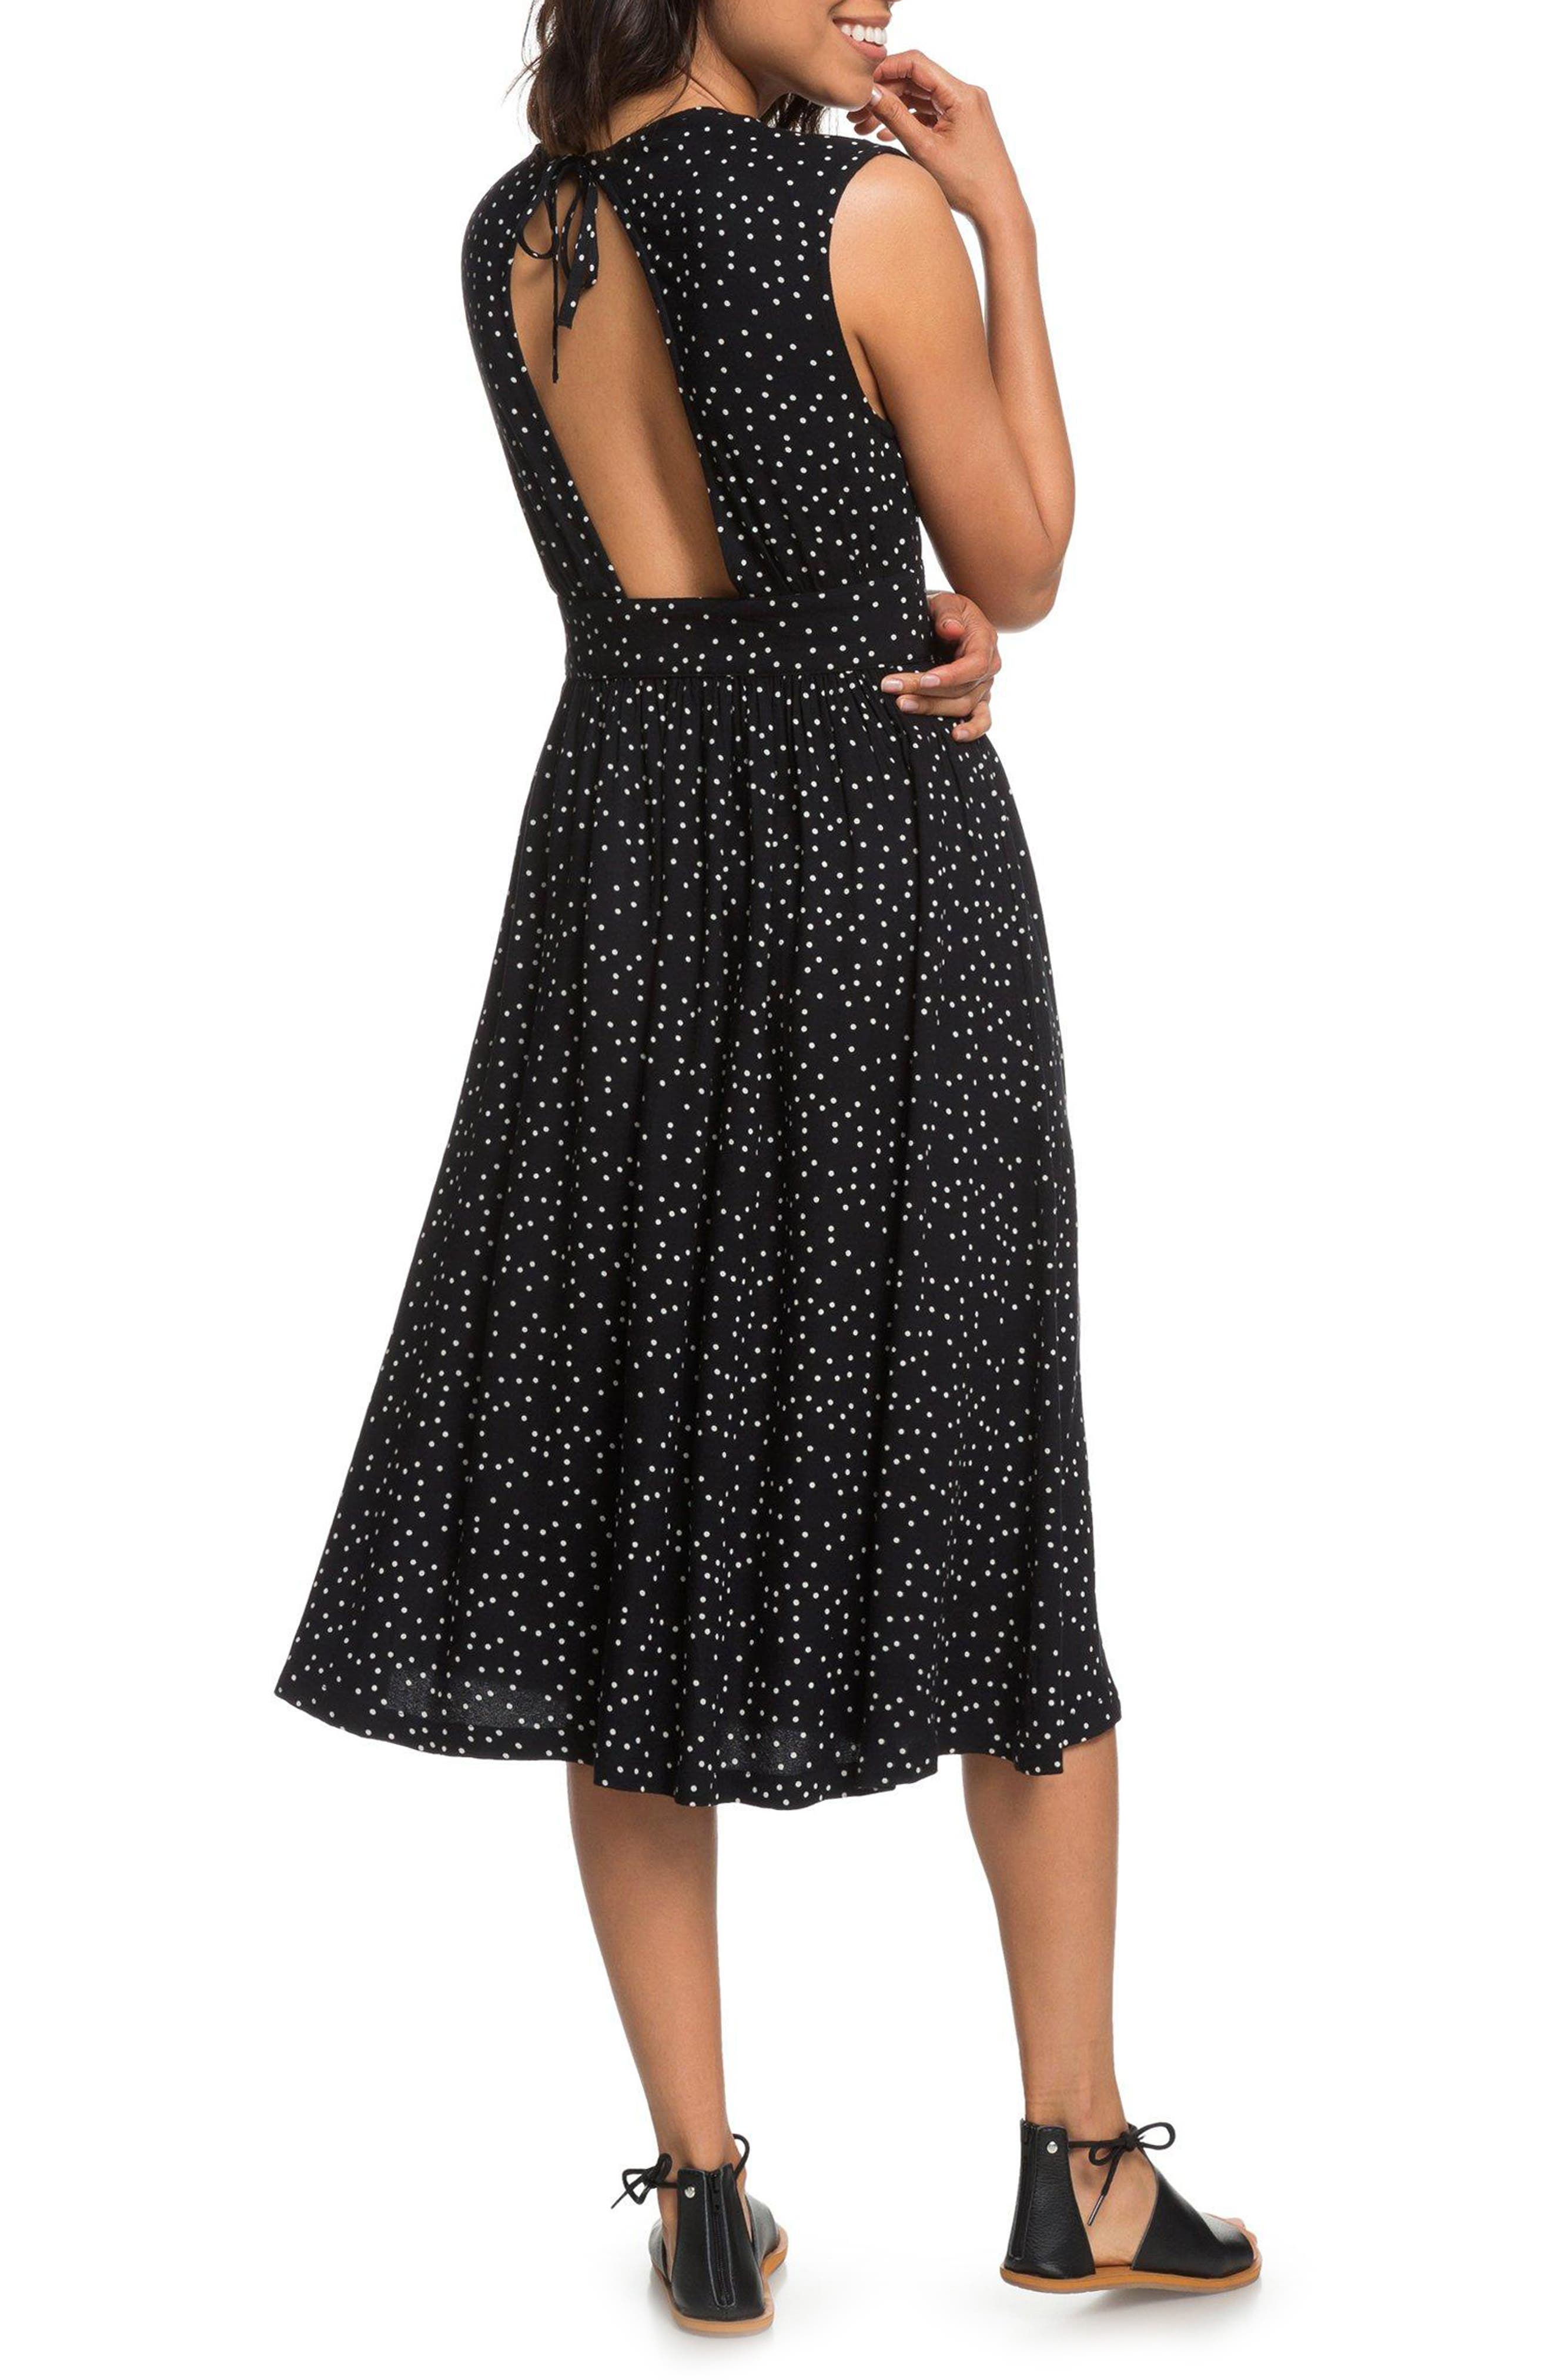 Retro Poetic Polka Dot Dress,                             Alternate thumbnail 2, color,                             001